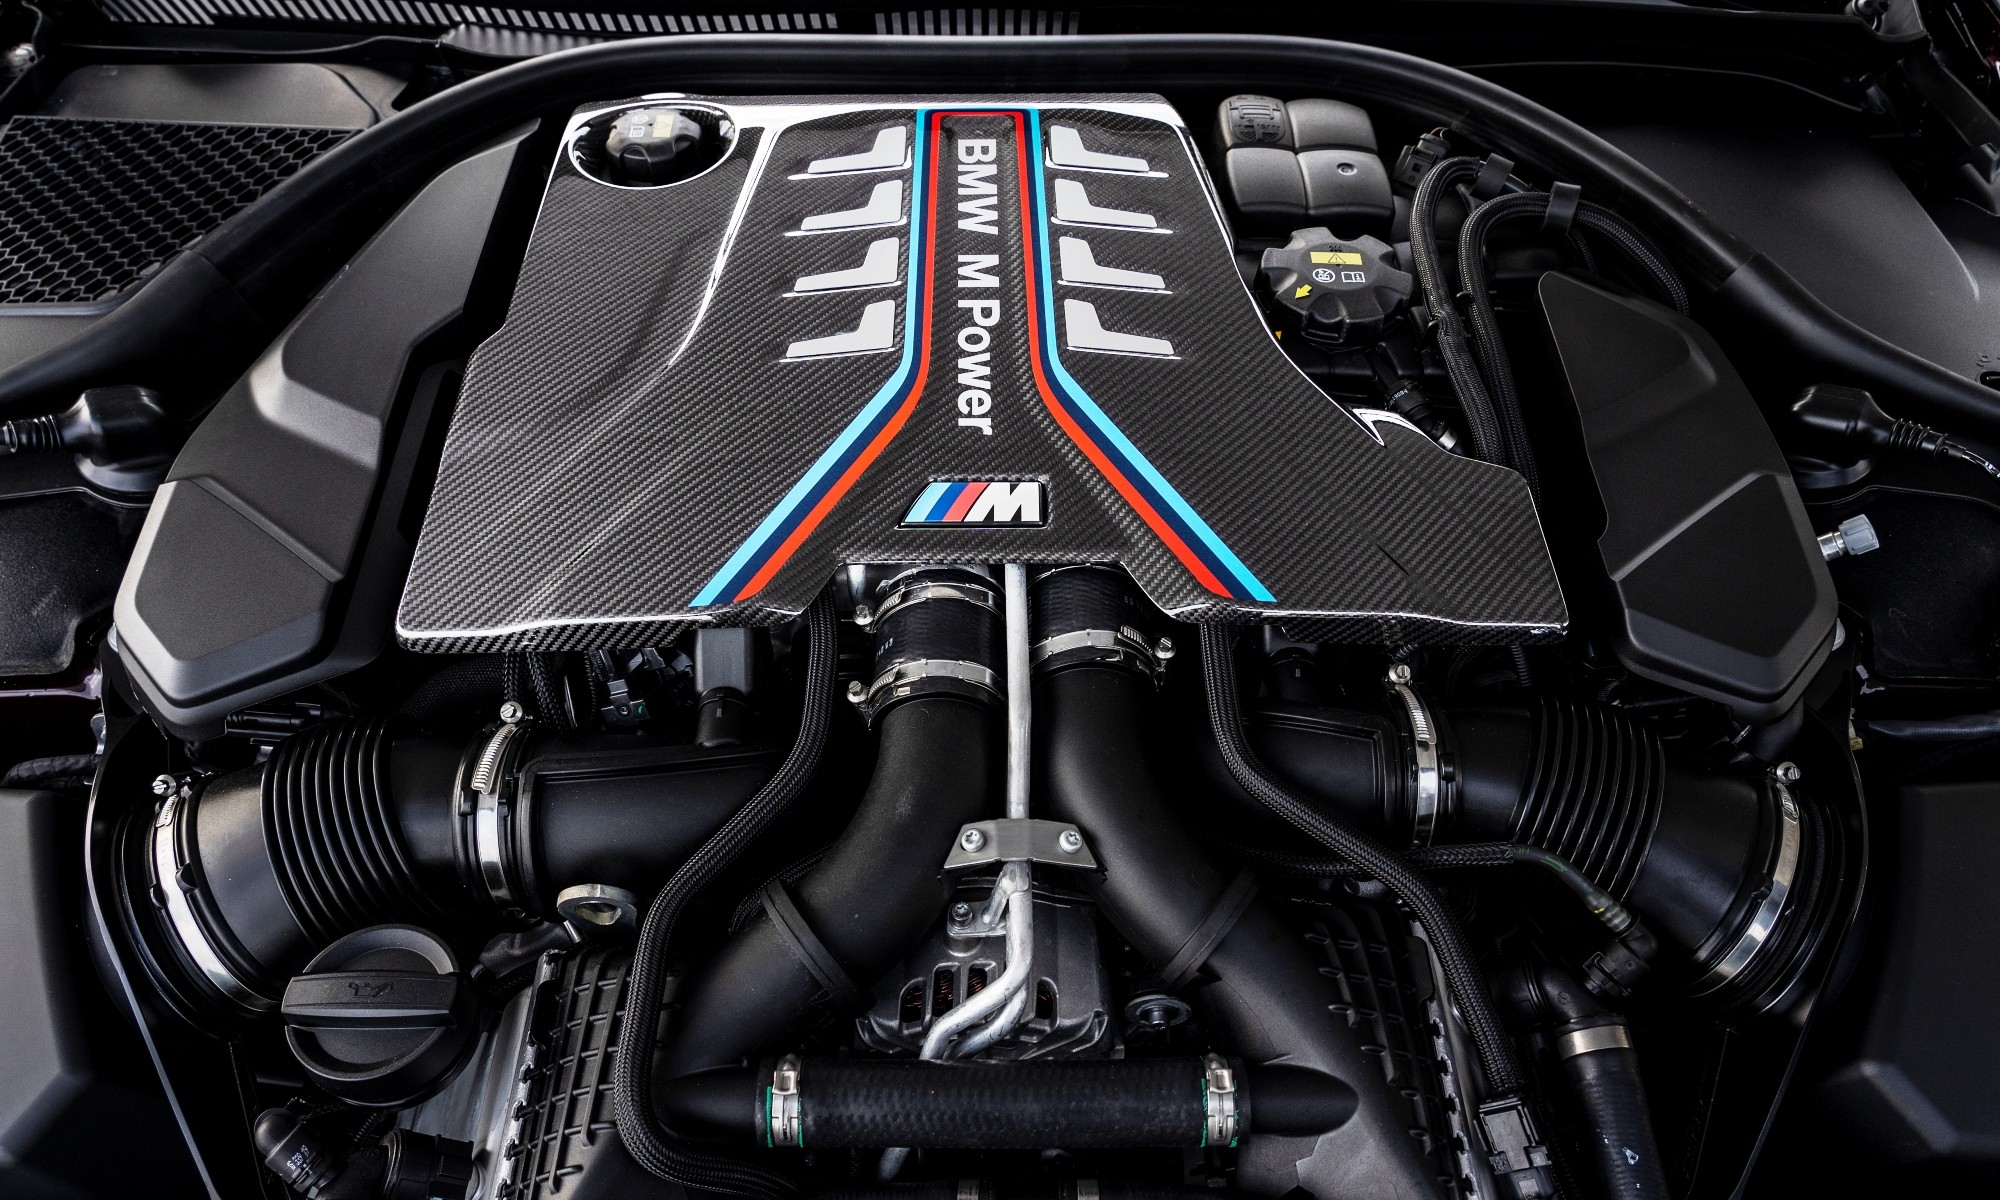 BMW M8 Gran Coupe engine